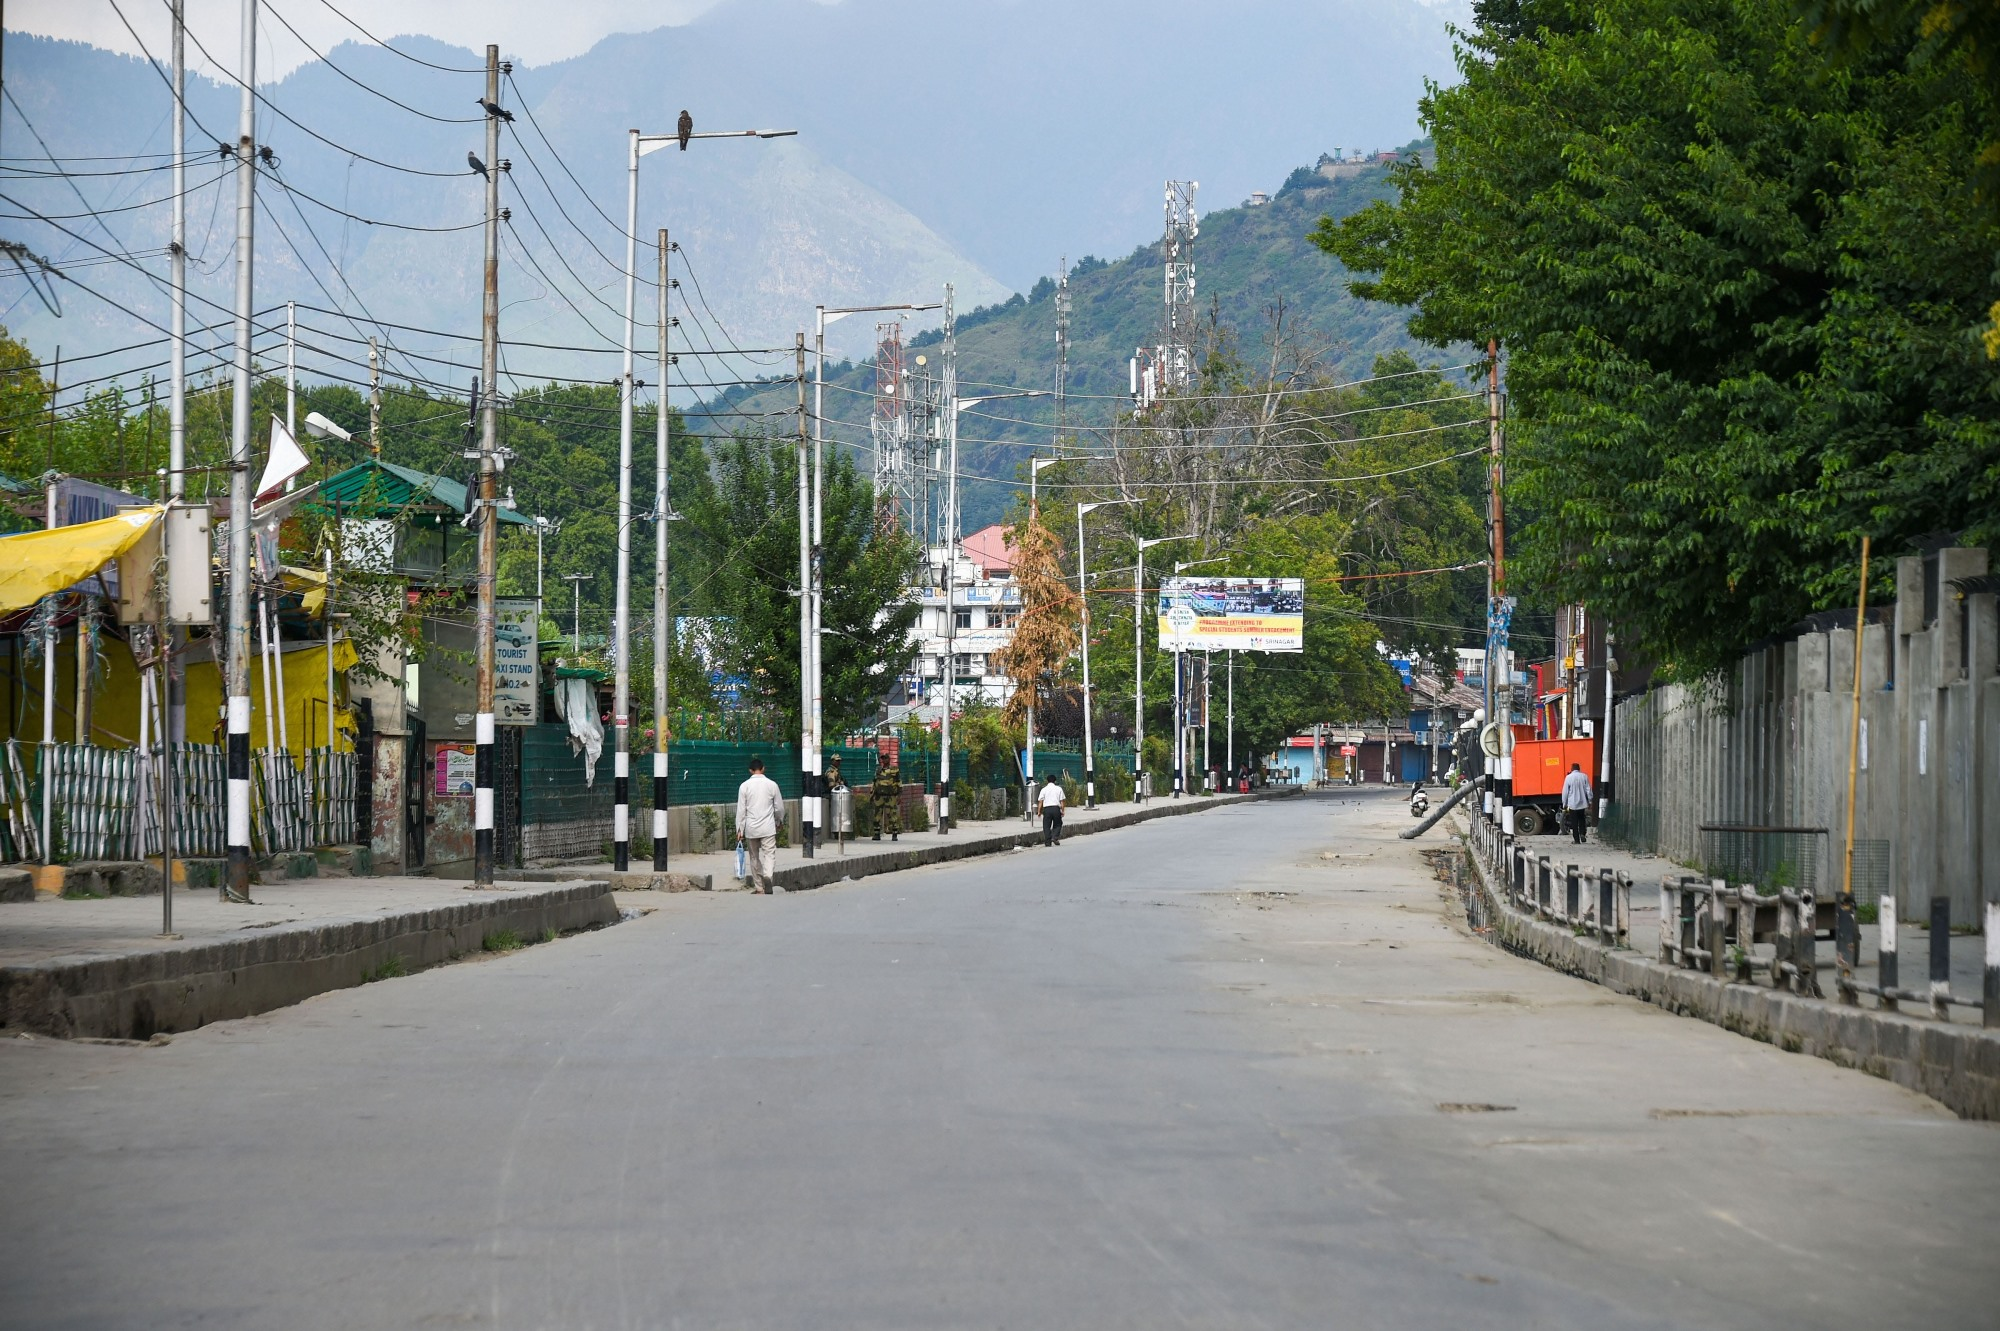 **EDS: RPT WITH DATE CORRECTION** Srinagar: A view of a deserted street during restrictions in Srinagar, Wednesday, Aug 7, 2019. Restrictions have been imposed in several districts of Jammu and Kashmir as a precautionary measure after the state lost its special status and was bifurcated on Tuesday as Parliament approved a resolution scrapping Article 370 of the Constitution and passed a bill to split the state into two Union Territories. (PTI Photo/S. Irfan)(PTI8_9_2019_000010B)